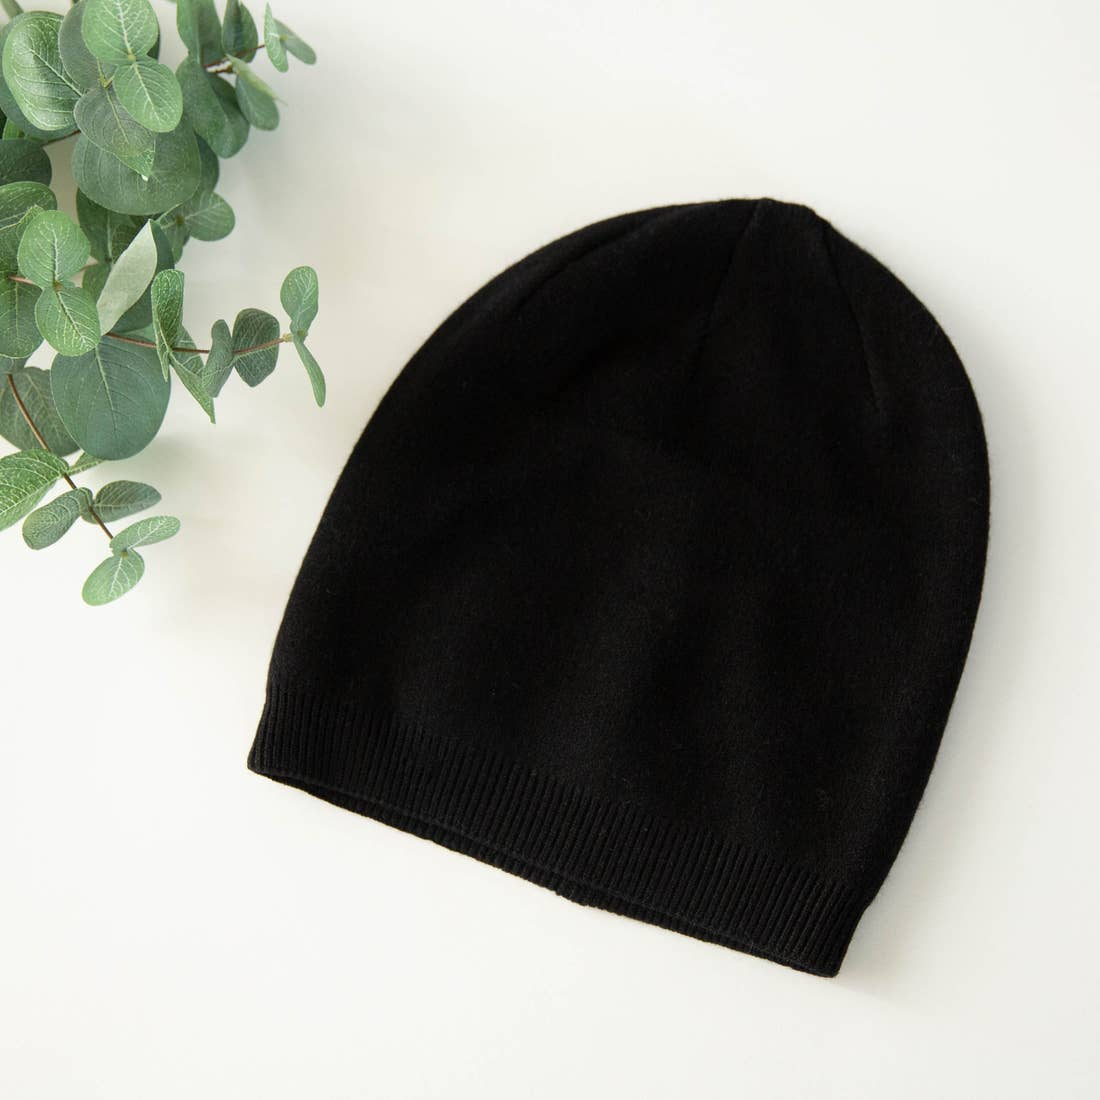 Cashmere Beanies